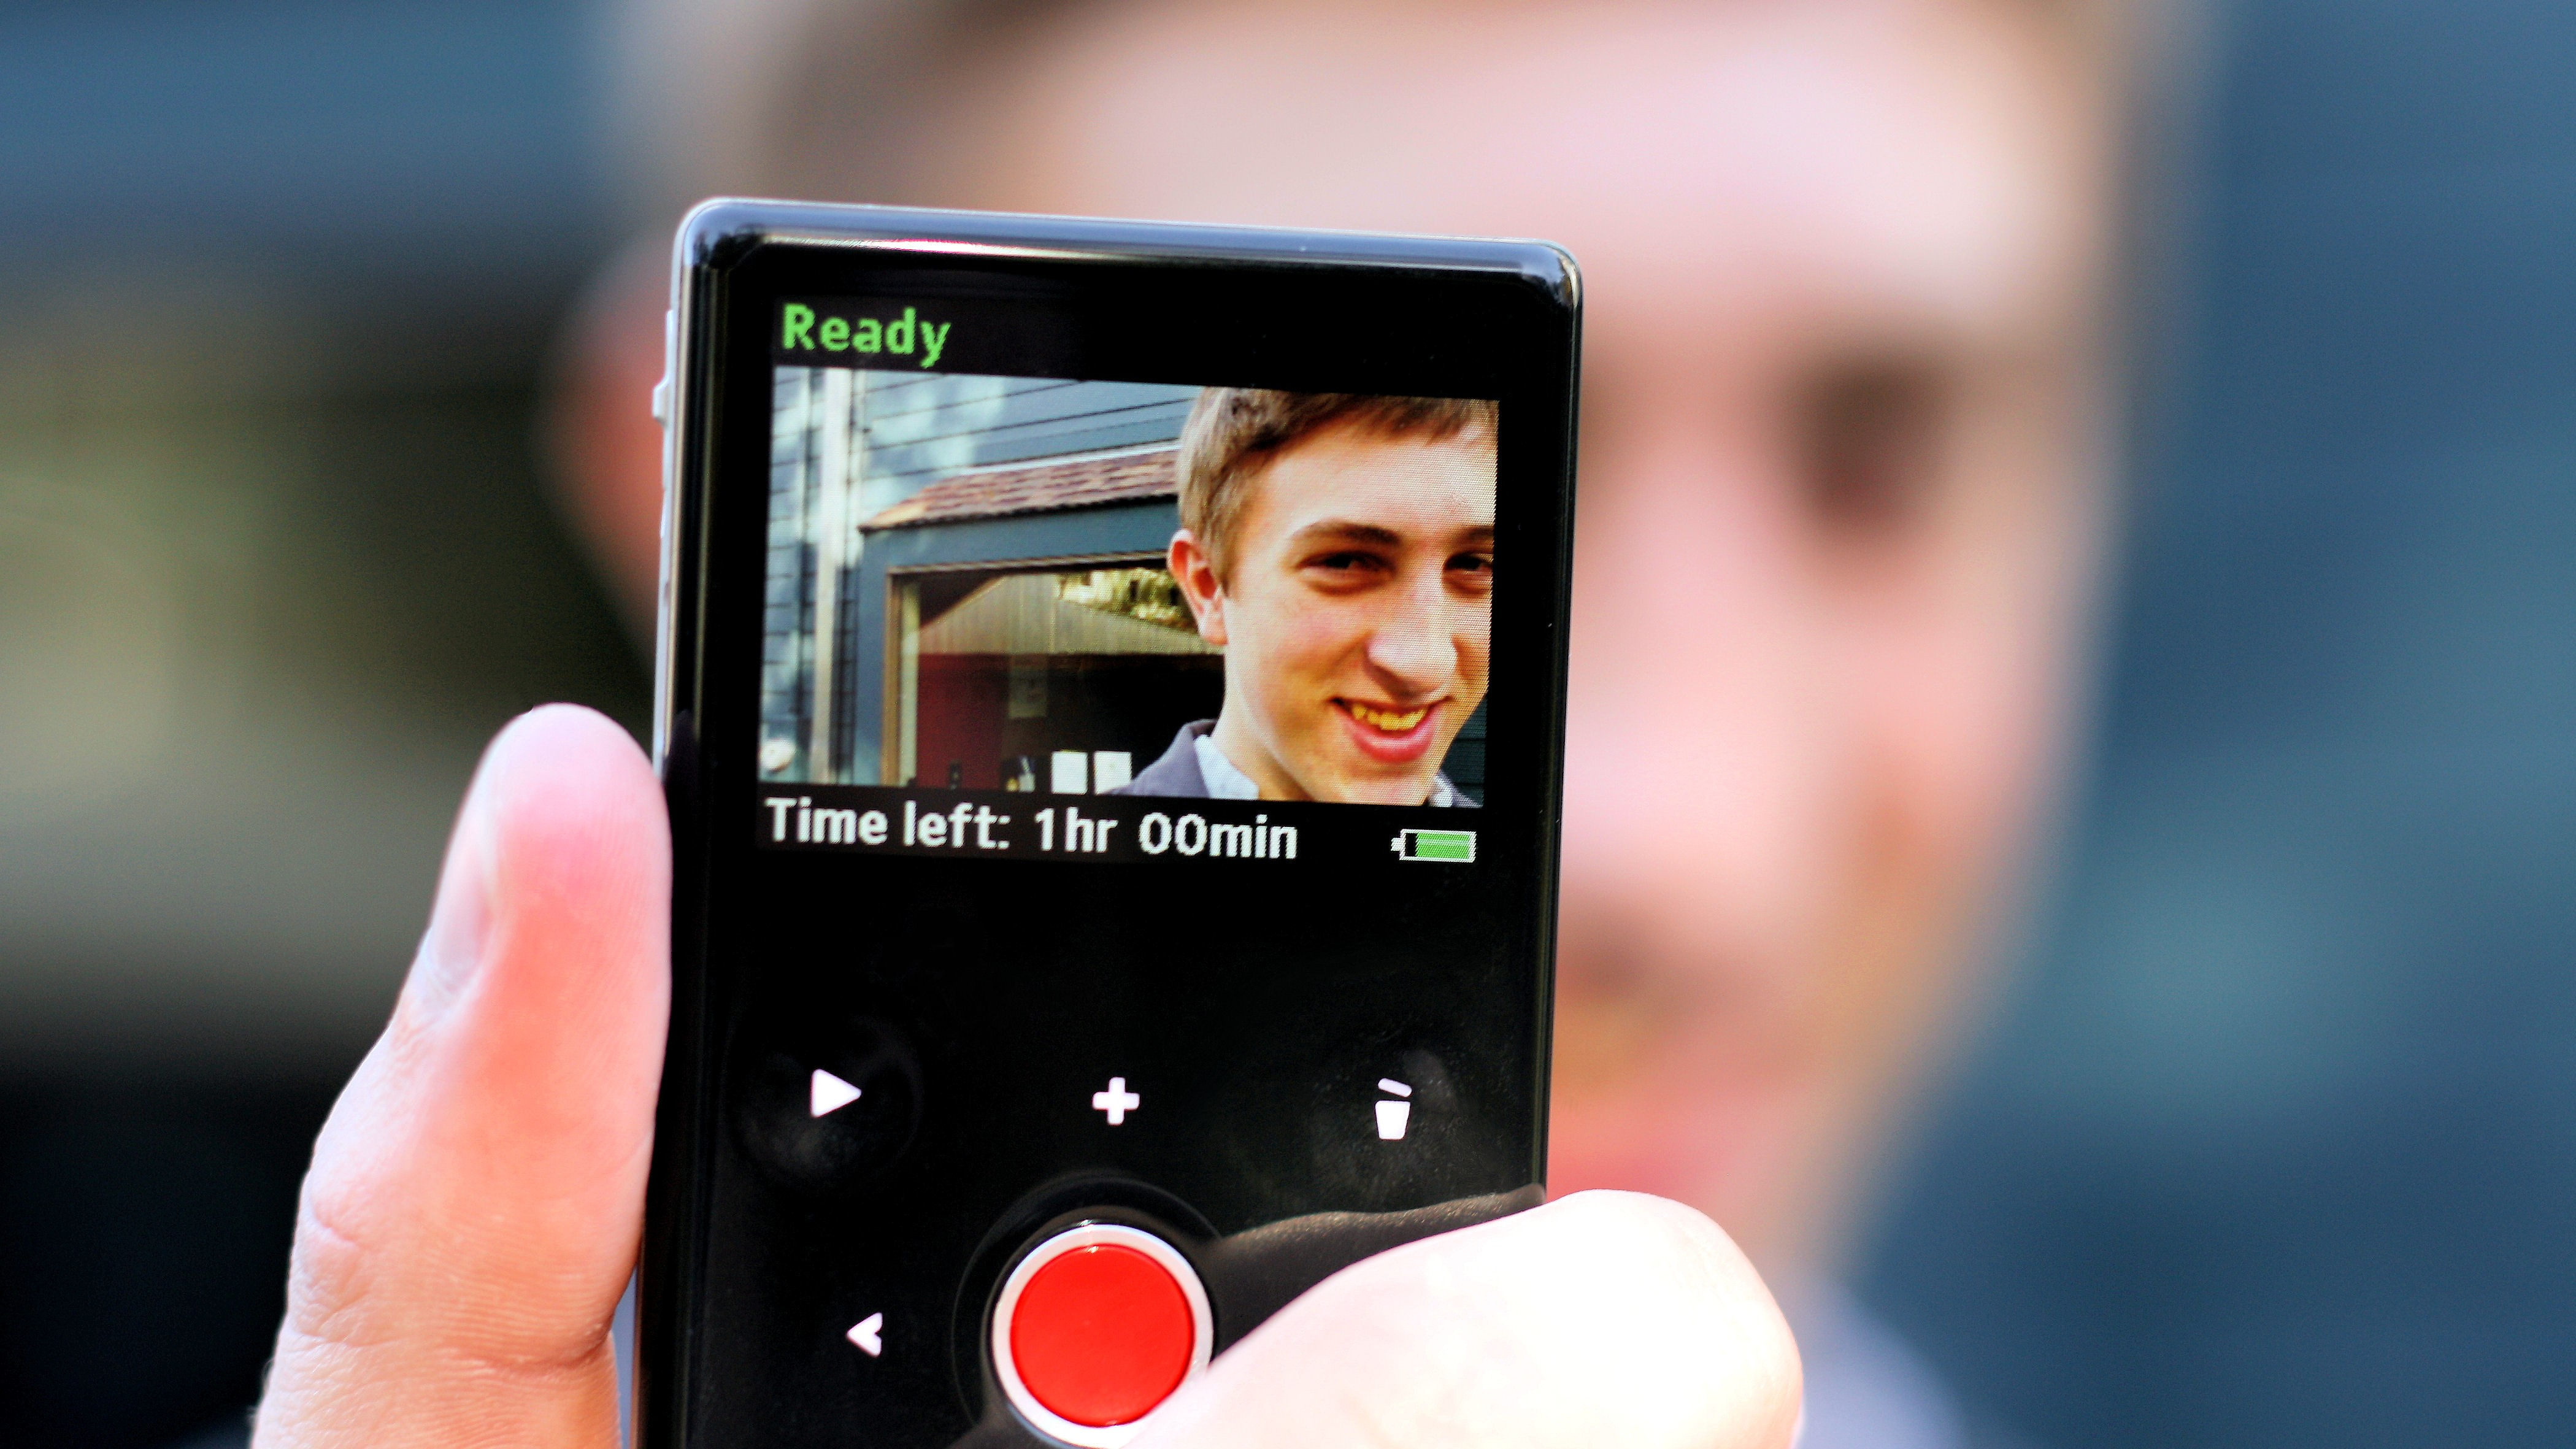 Mobile Video (Image: Phil Roeder [CC BY 2.0], via Flickr)